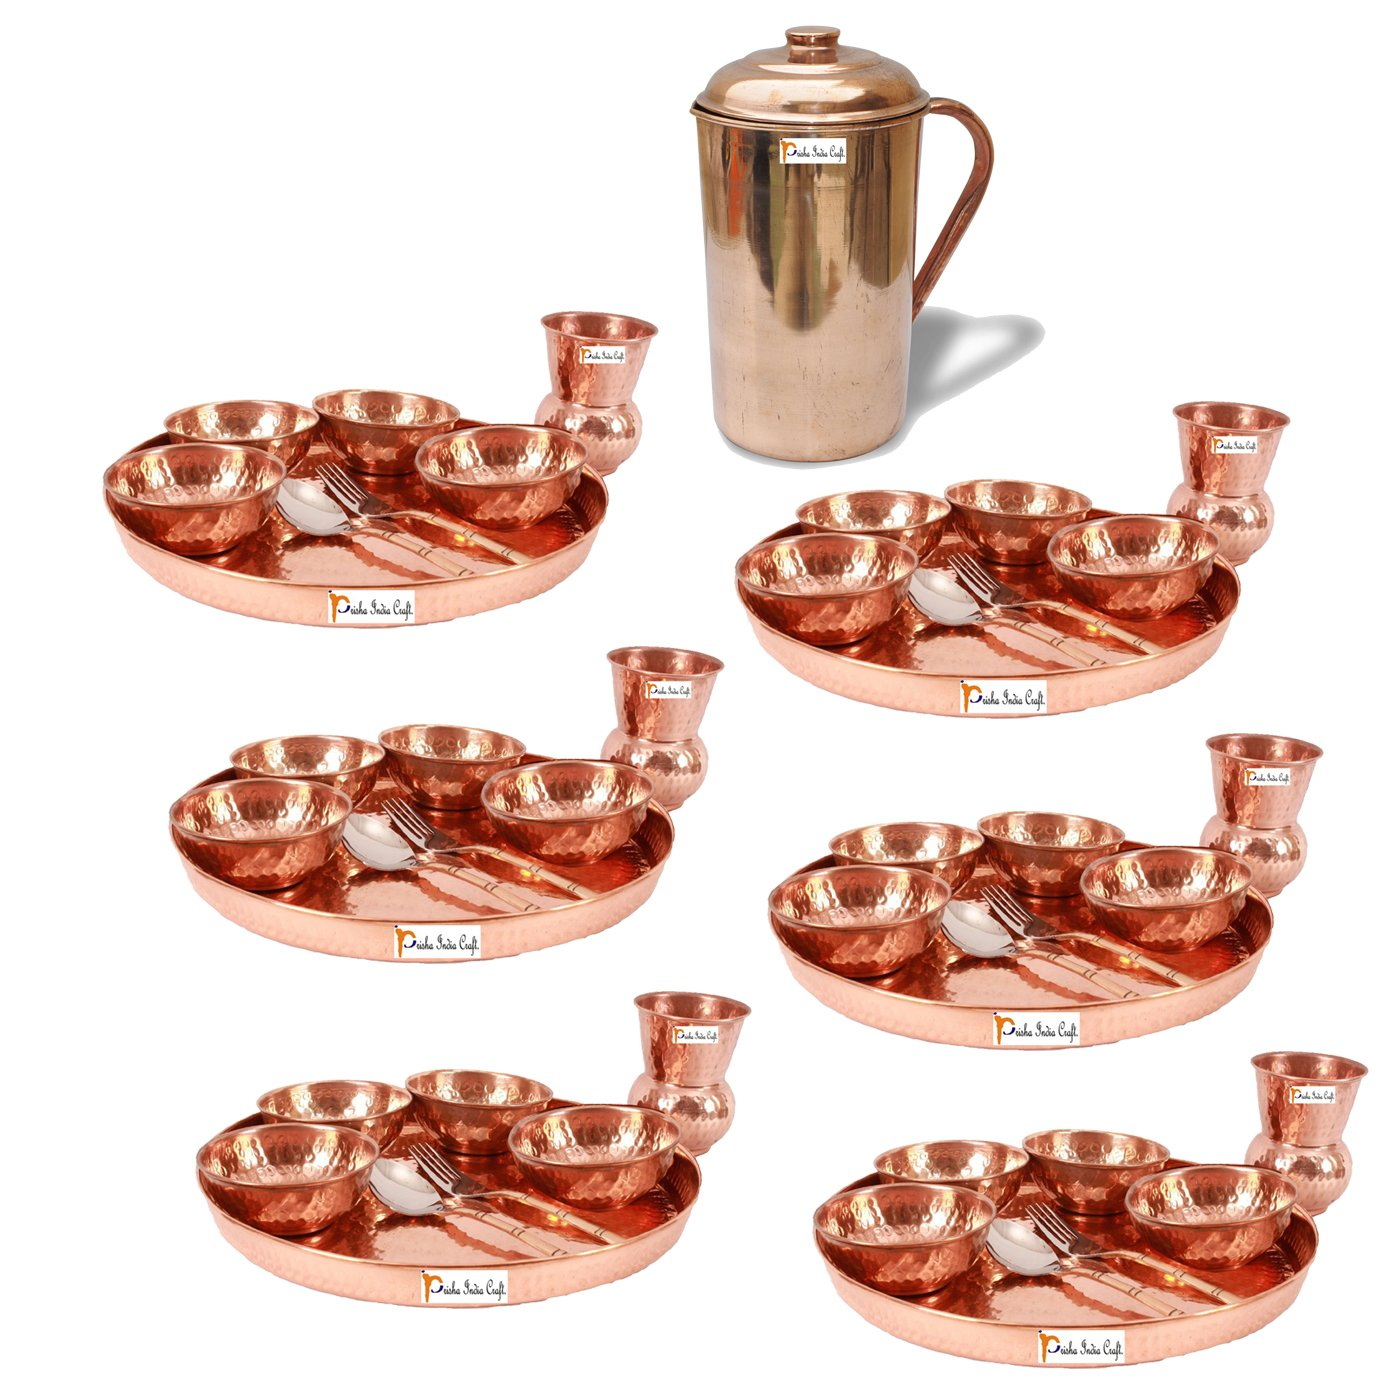 Prisha India Craft Set of 6 Dinnerware Traditional 100% Pure Copper Dinner Set of Thali Plate, Bowls, Glass and Spoon, Dia 12'' With 1 Pure Copper Pitcher Jug - Christmas Gift